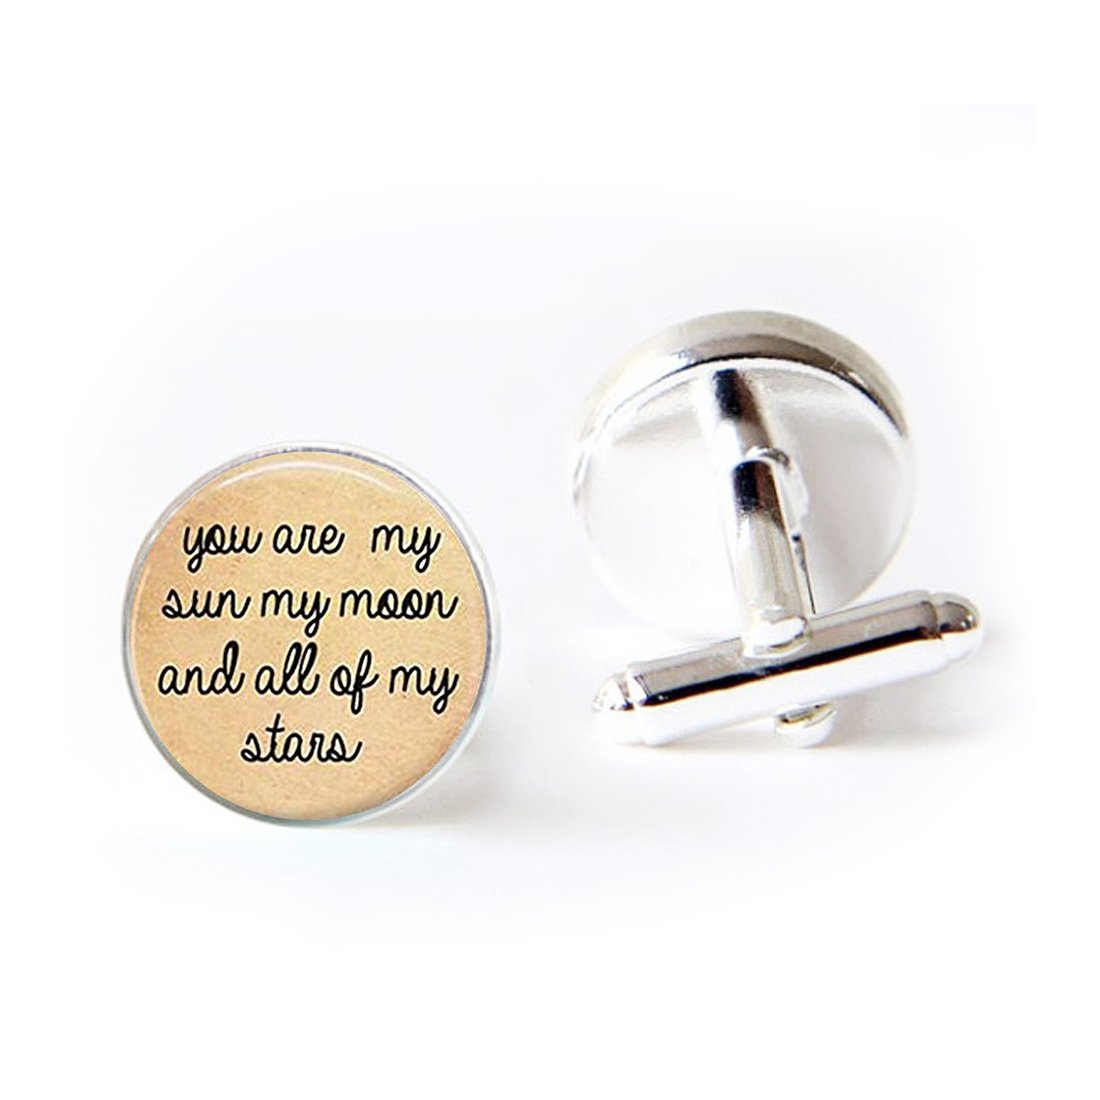 LooPoP Round Cufflink Set You Are My Sun My Moon Quote Cufflinks For Men's Accessories Shirts Business Wedding